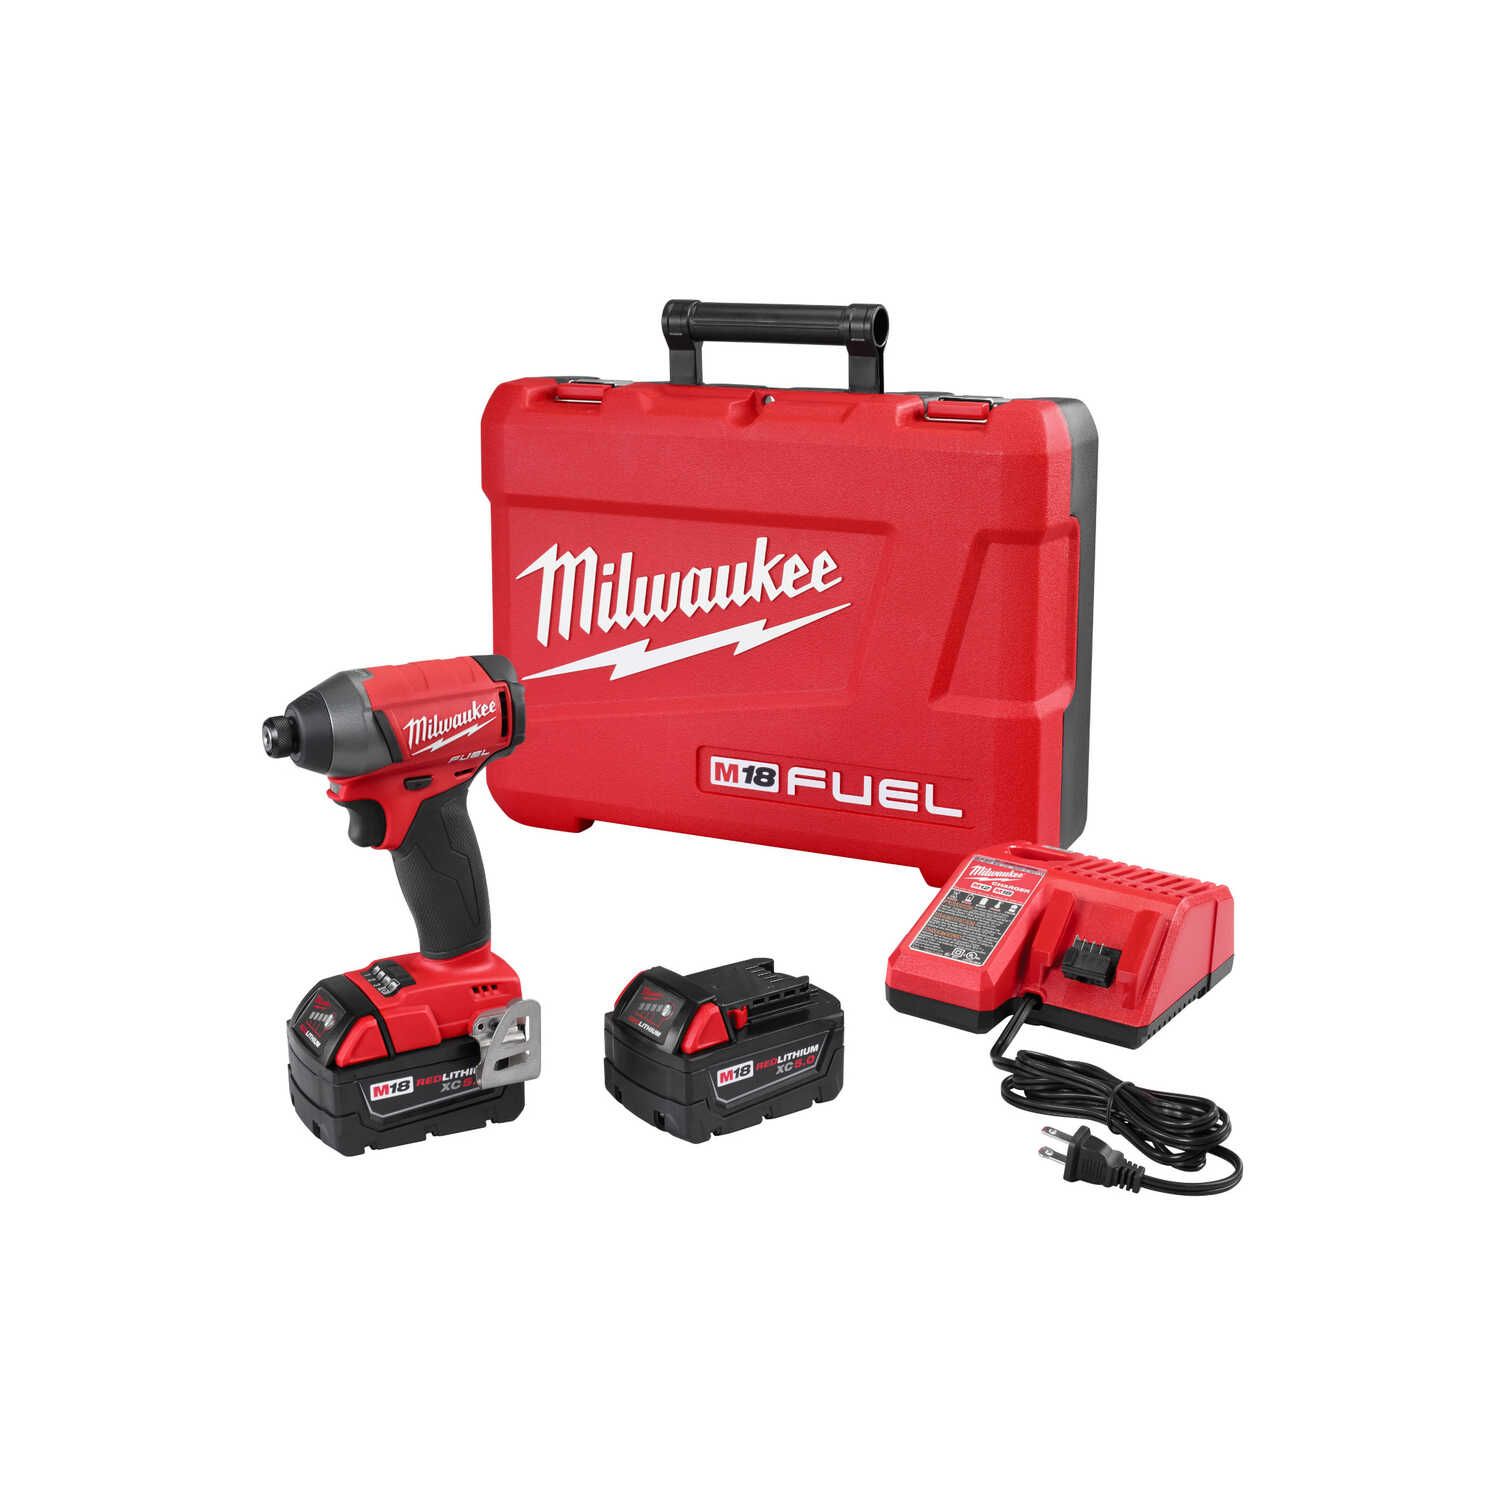 Milwaukee  M18 FUEL  18 volt Cordless  Brushless  Impact Driver  Kit  1800 in-lb